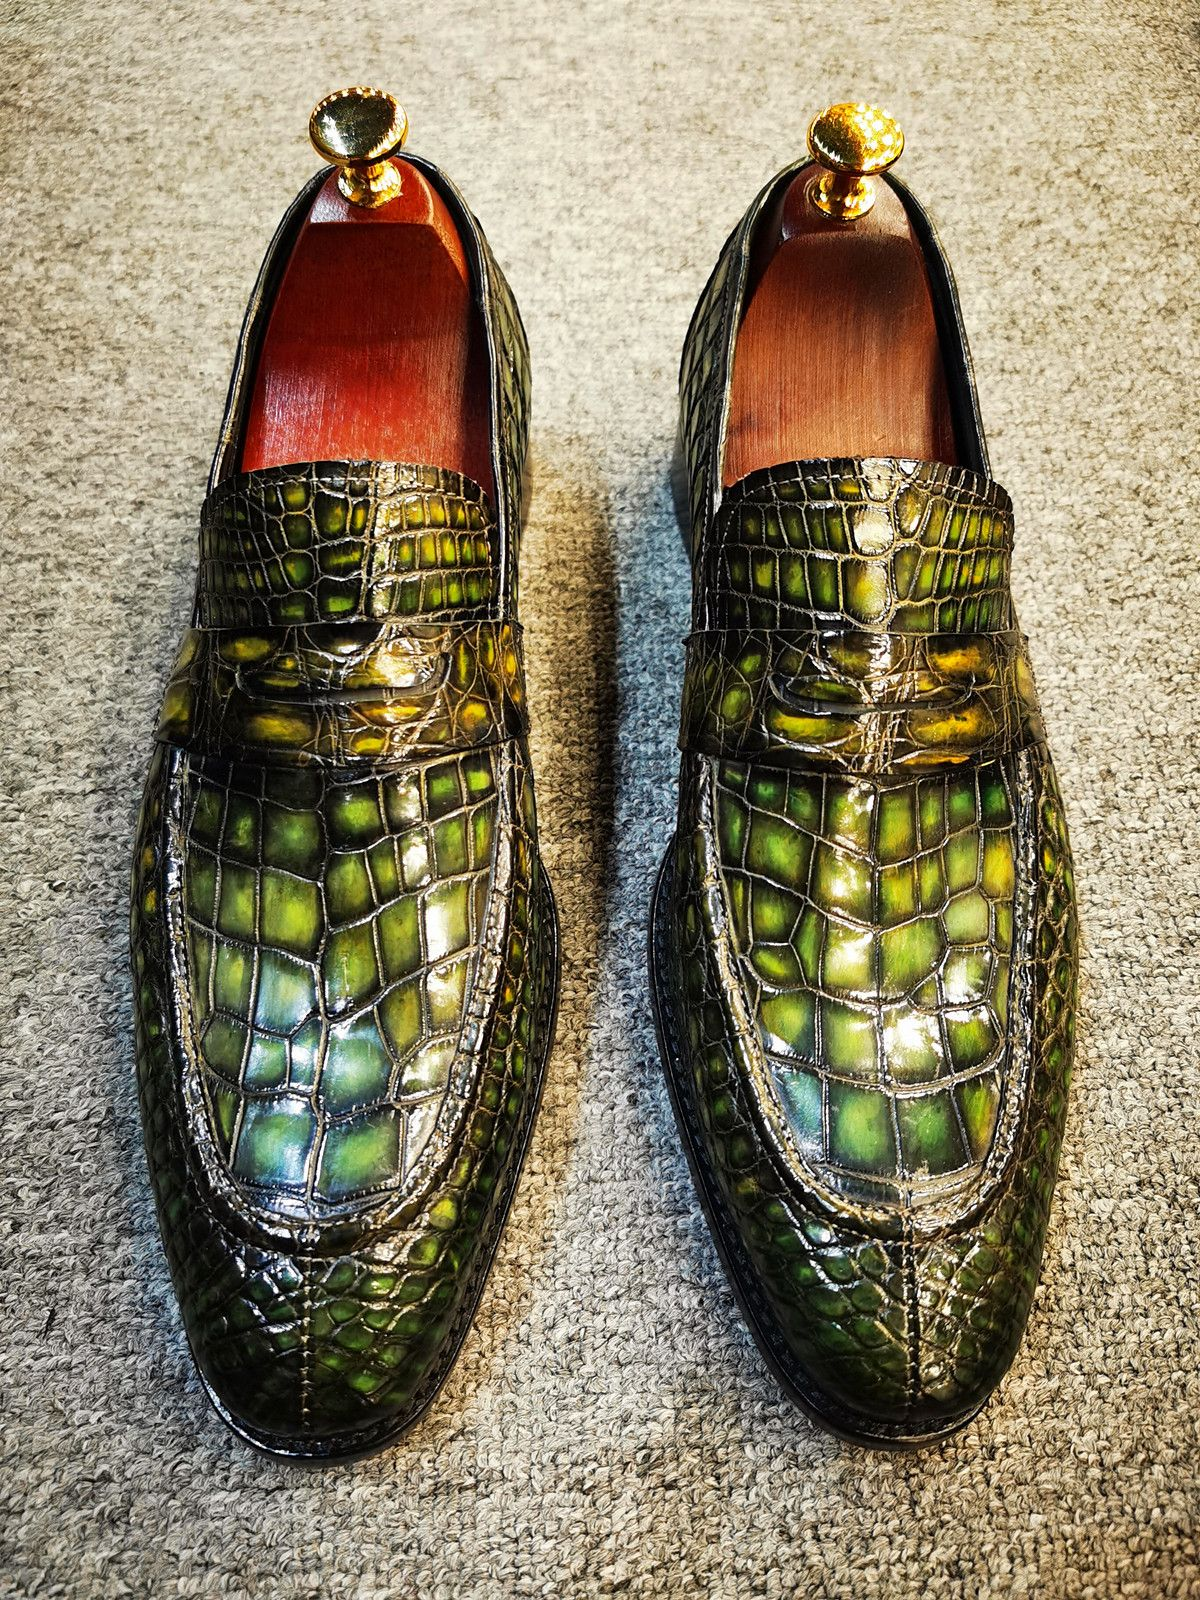 Pin on Exotic Skin Shoes for Men